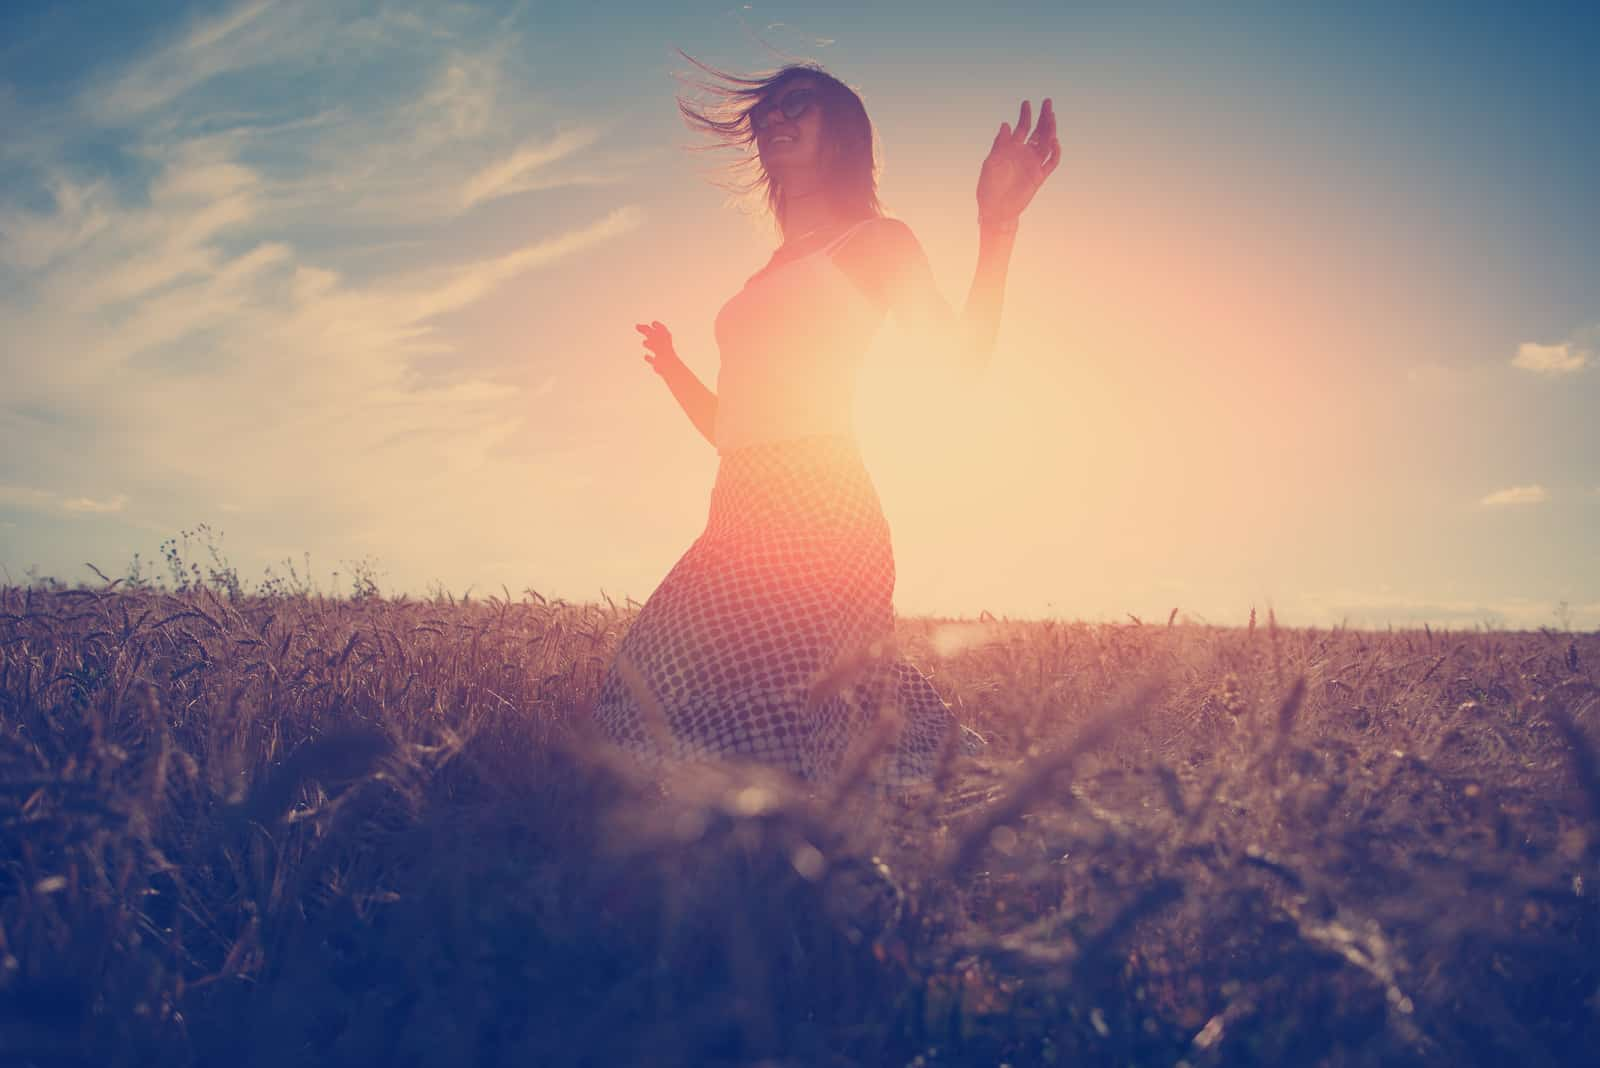 handsome girl dancing outdoors at sunset